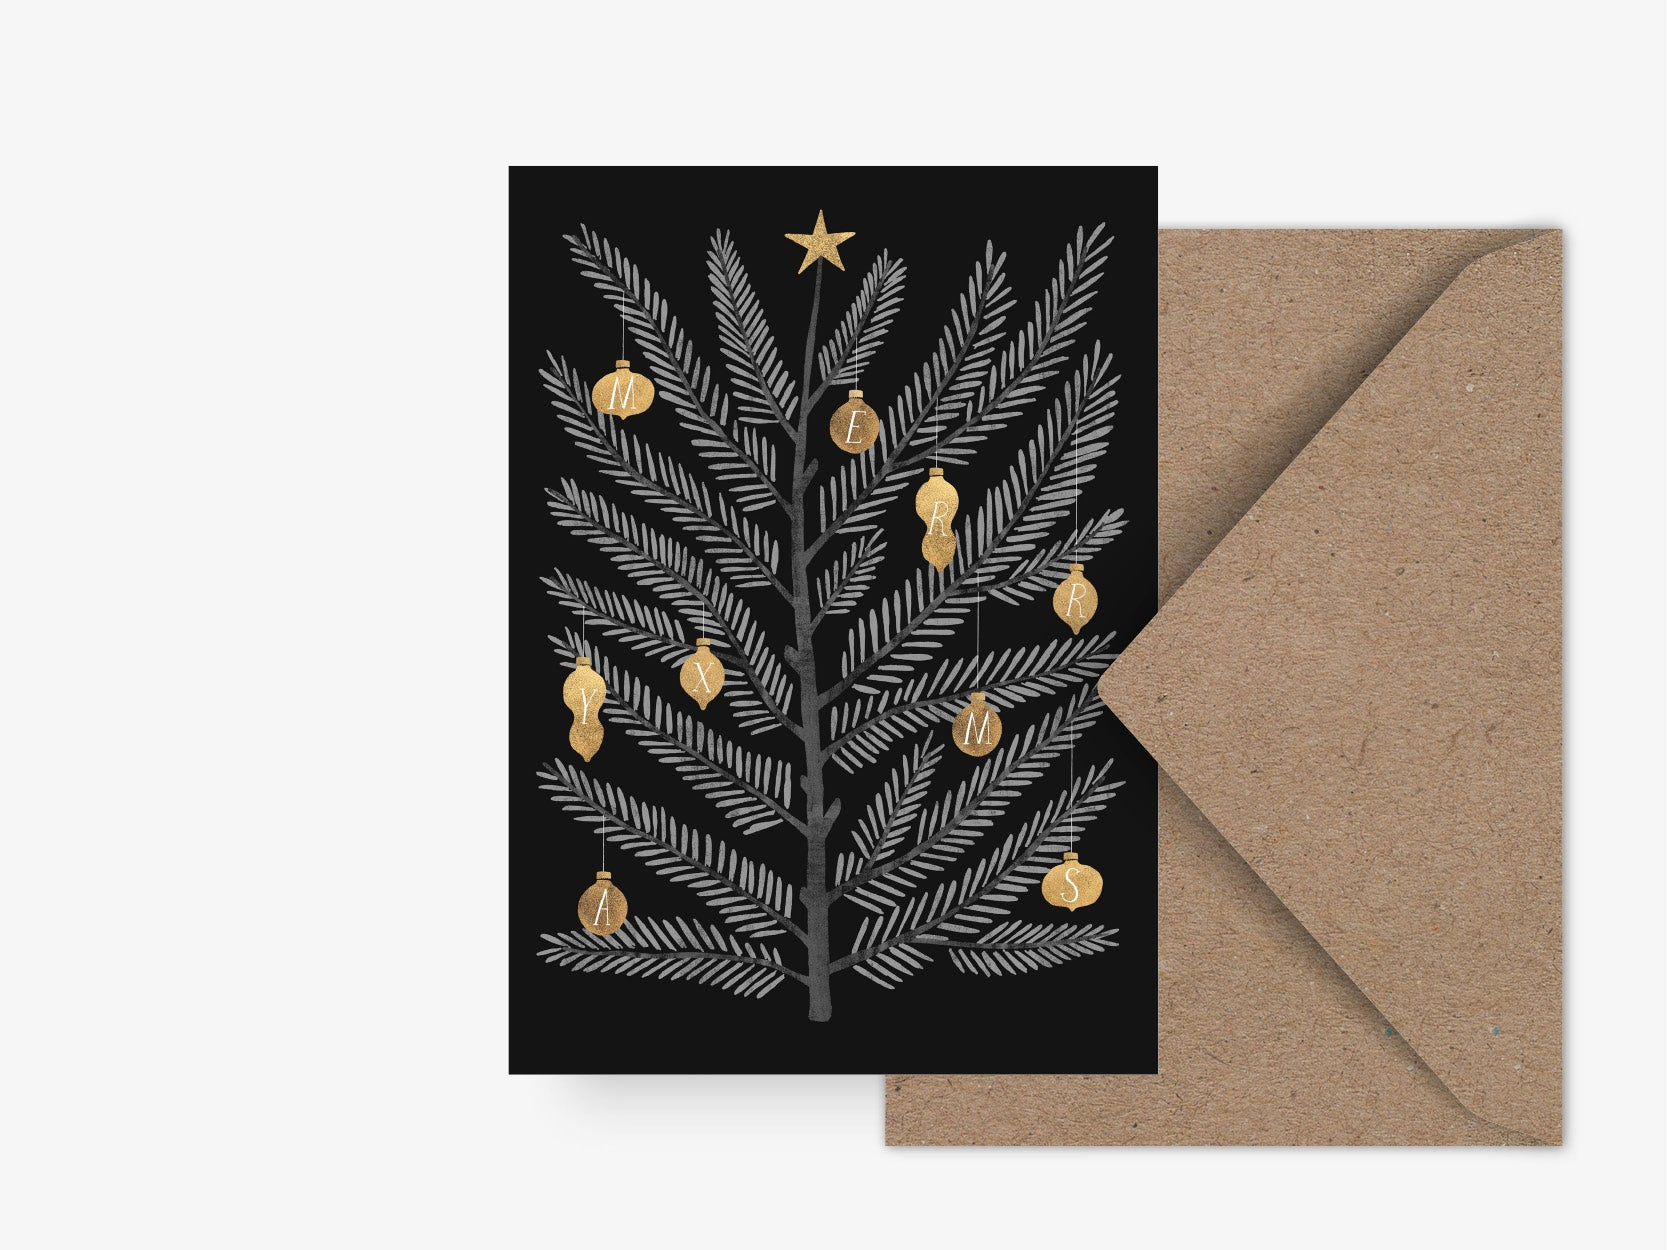 Postkarte / Swedish Fir No. 2